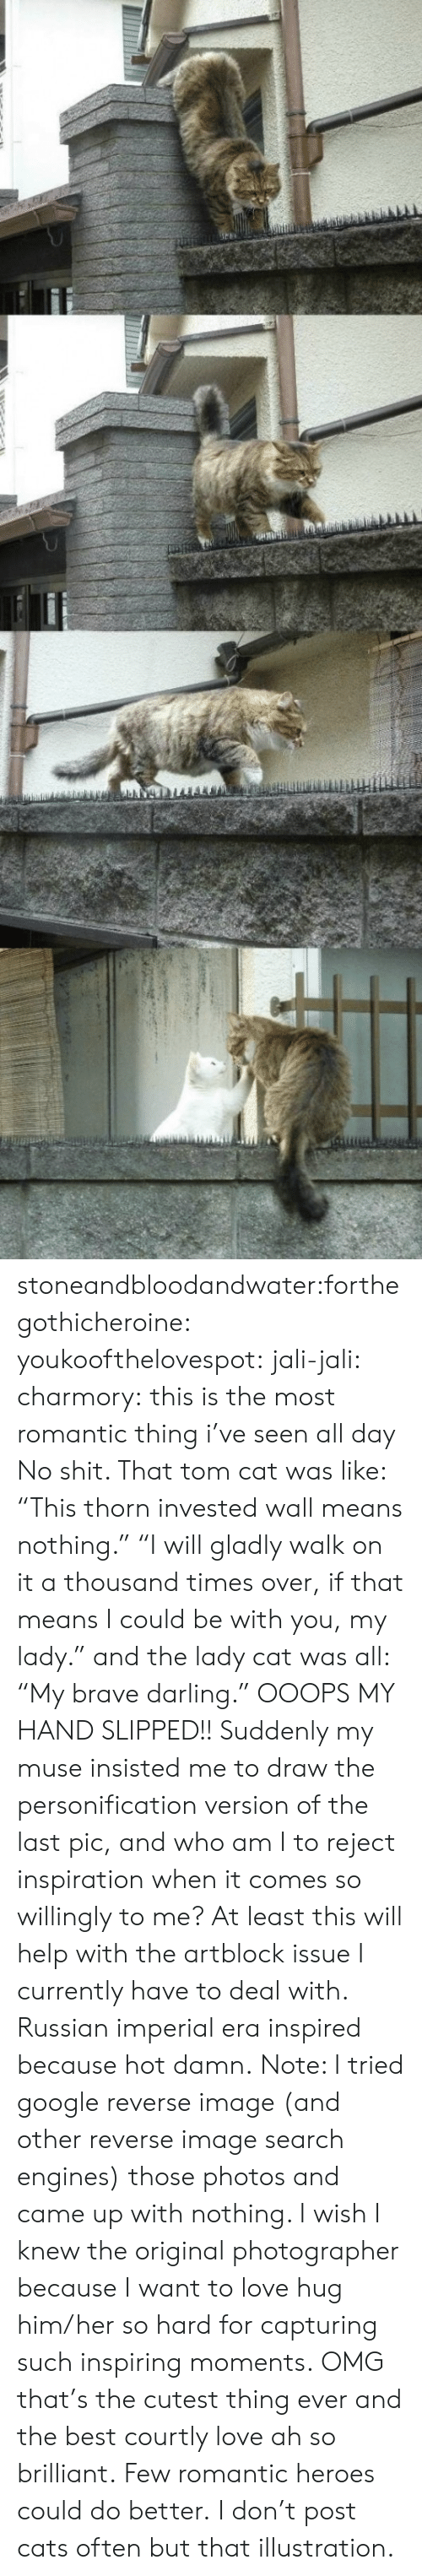 "Cats, Google, and Love: stoneandbloodandwater:forthegothicheroine:  youkoofthelovespot:  jali-jali:  charmory:  this is the most romantic thing i've seen all day  No shit. That tom cat was like: ""This thorn invested wall means nothing."" ""I will gladly walk on it a thousand times over, if that means I could be with you, my lady."" and the lady cat was all: ""My brave darling."" OOOPS MY HAND SLIPPED!! Suddenly my muse insisted me to draw the personification version of the last pic, and who am I to reject inspiration when it comes so willingly to me? At least this will help with the artblock issue I currently have to deal with. Russian imperial era inspired because hot damn. Note: I tried google reverse image (and other reverse image search engines) those photos and came up with nothing. I wish I knew the original photographer because I want to love hug him/her so hard for capturing such inspiring moments.  OMG that's the cutest thing ever and the best courtly love ah so brilliant.  Few romantic heroes could do better.  I don't post cats often but that illustration."